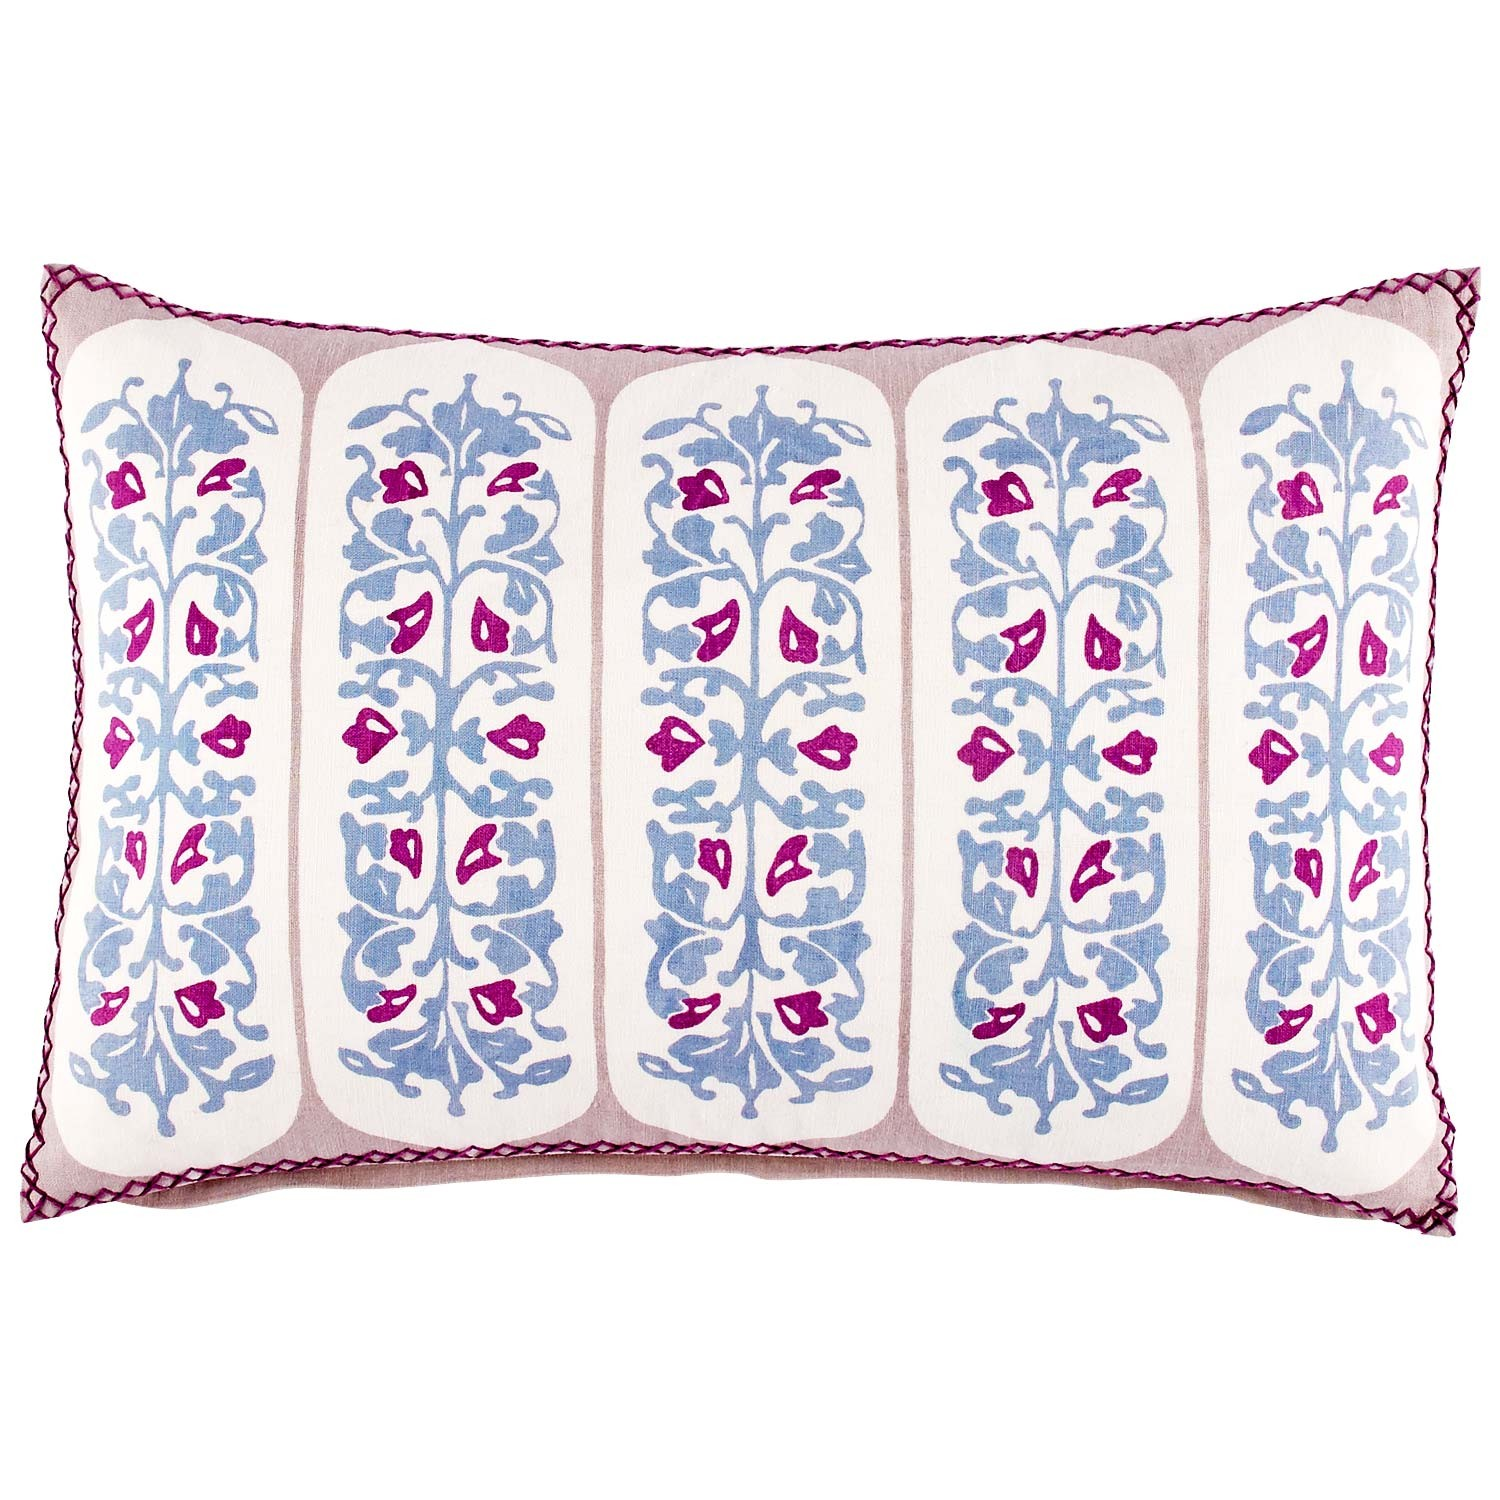 Amusing John Robshaw Pillows for Living Room Accessories Ideas: Pillow Shams Wiki | John Robshaw Pillows | John Robshaw Bedskirt